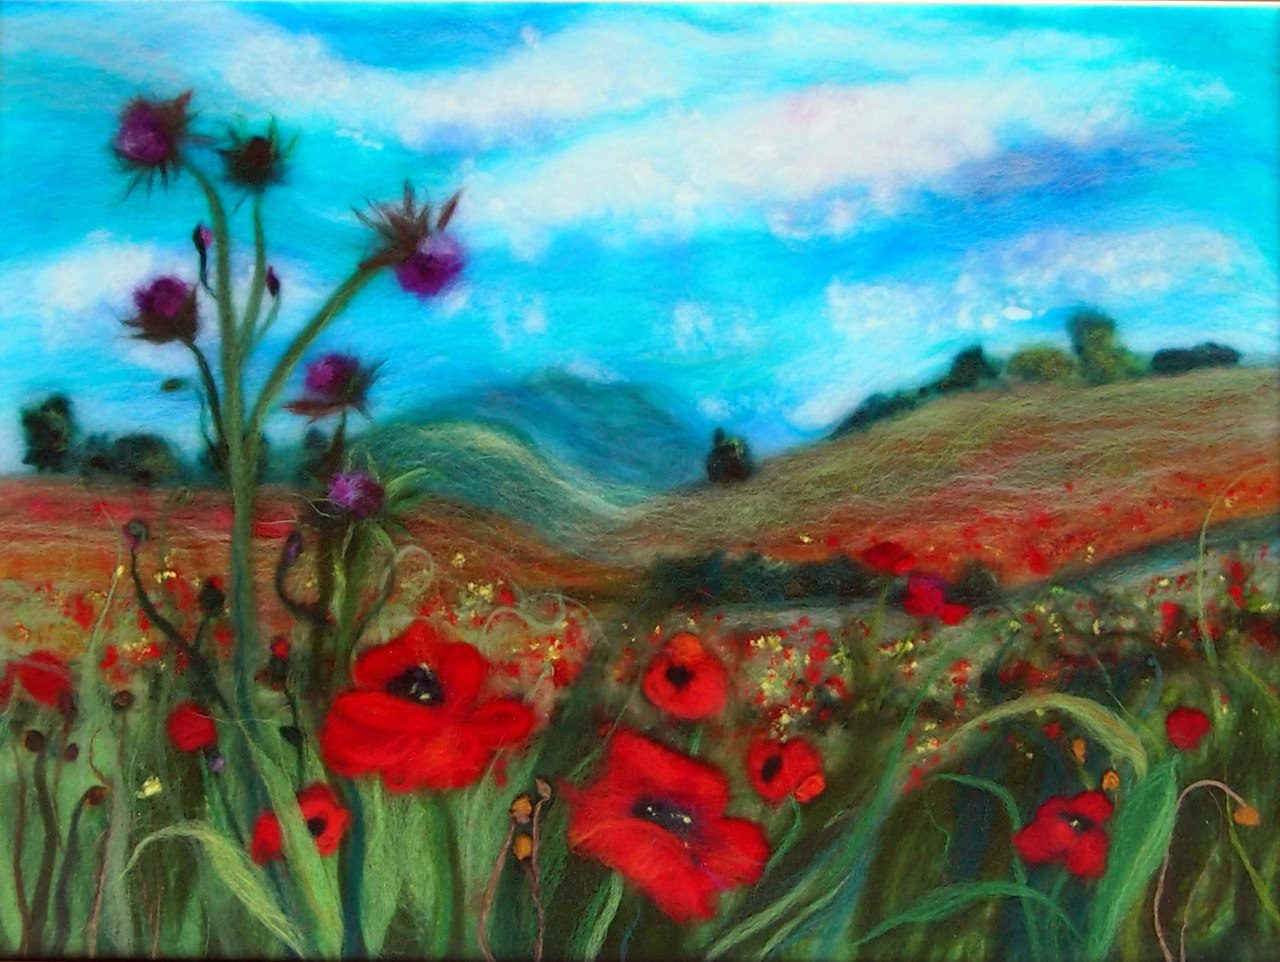 'Fields with red poppies' wool painting by Textile Artist from Worcestershire Raya Brown